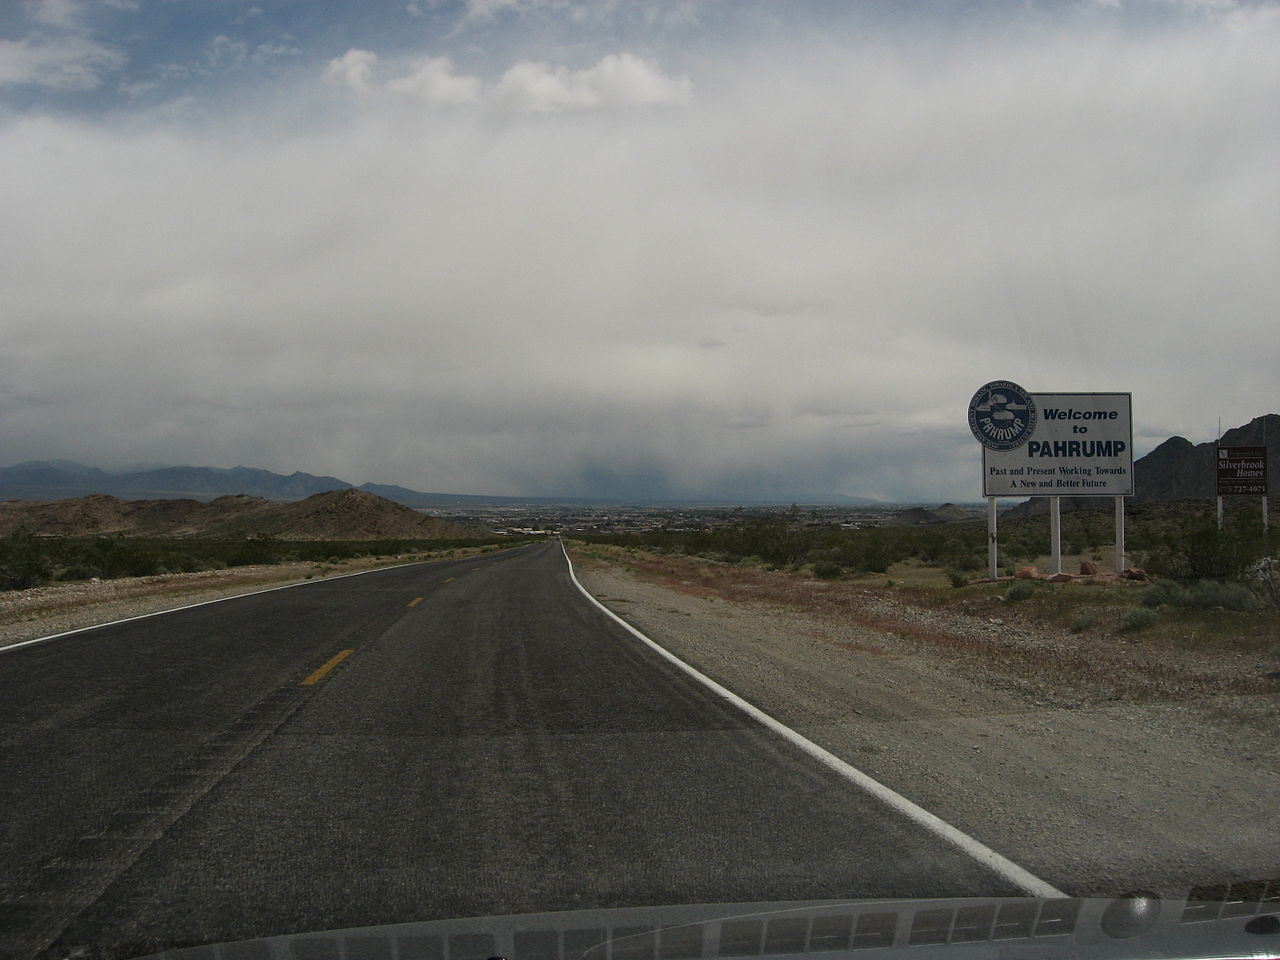 File Entering Pahrump Nevada 5628926483 Jpg Wikimedia